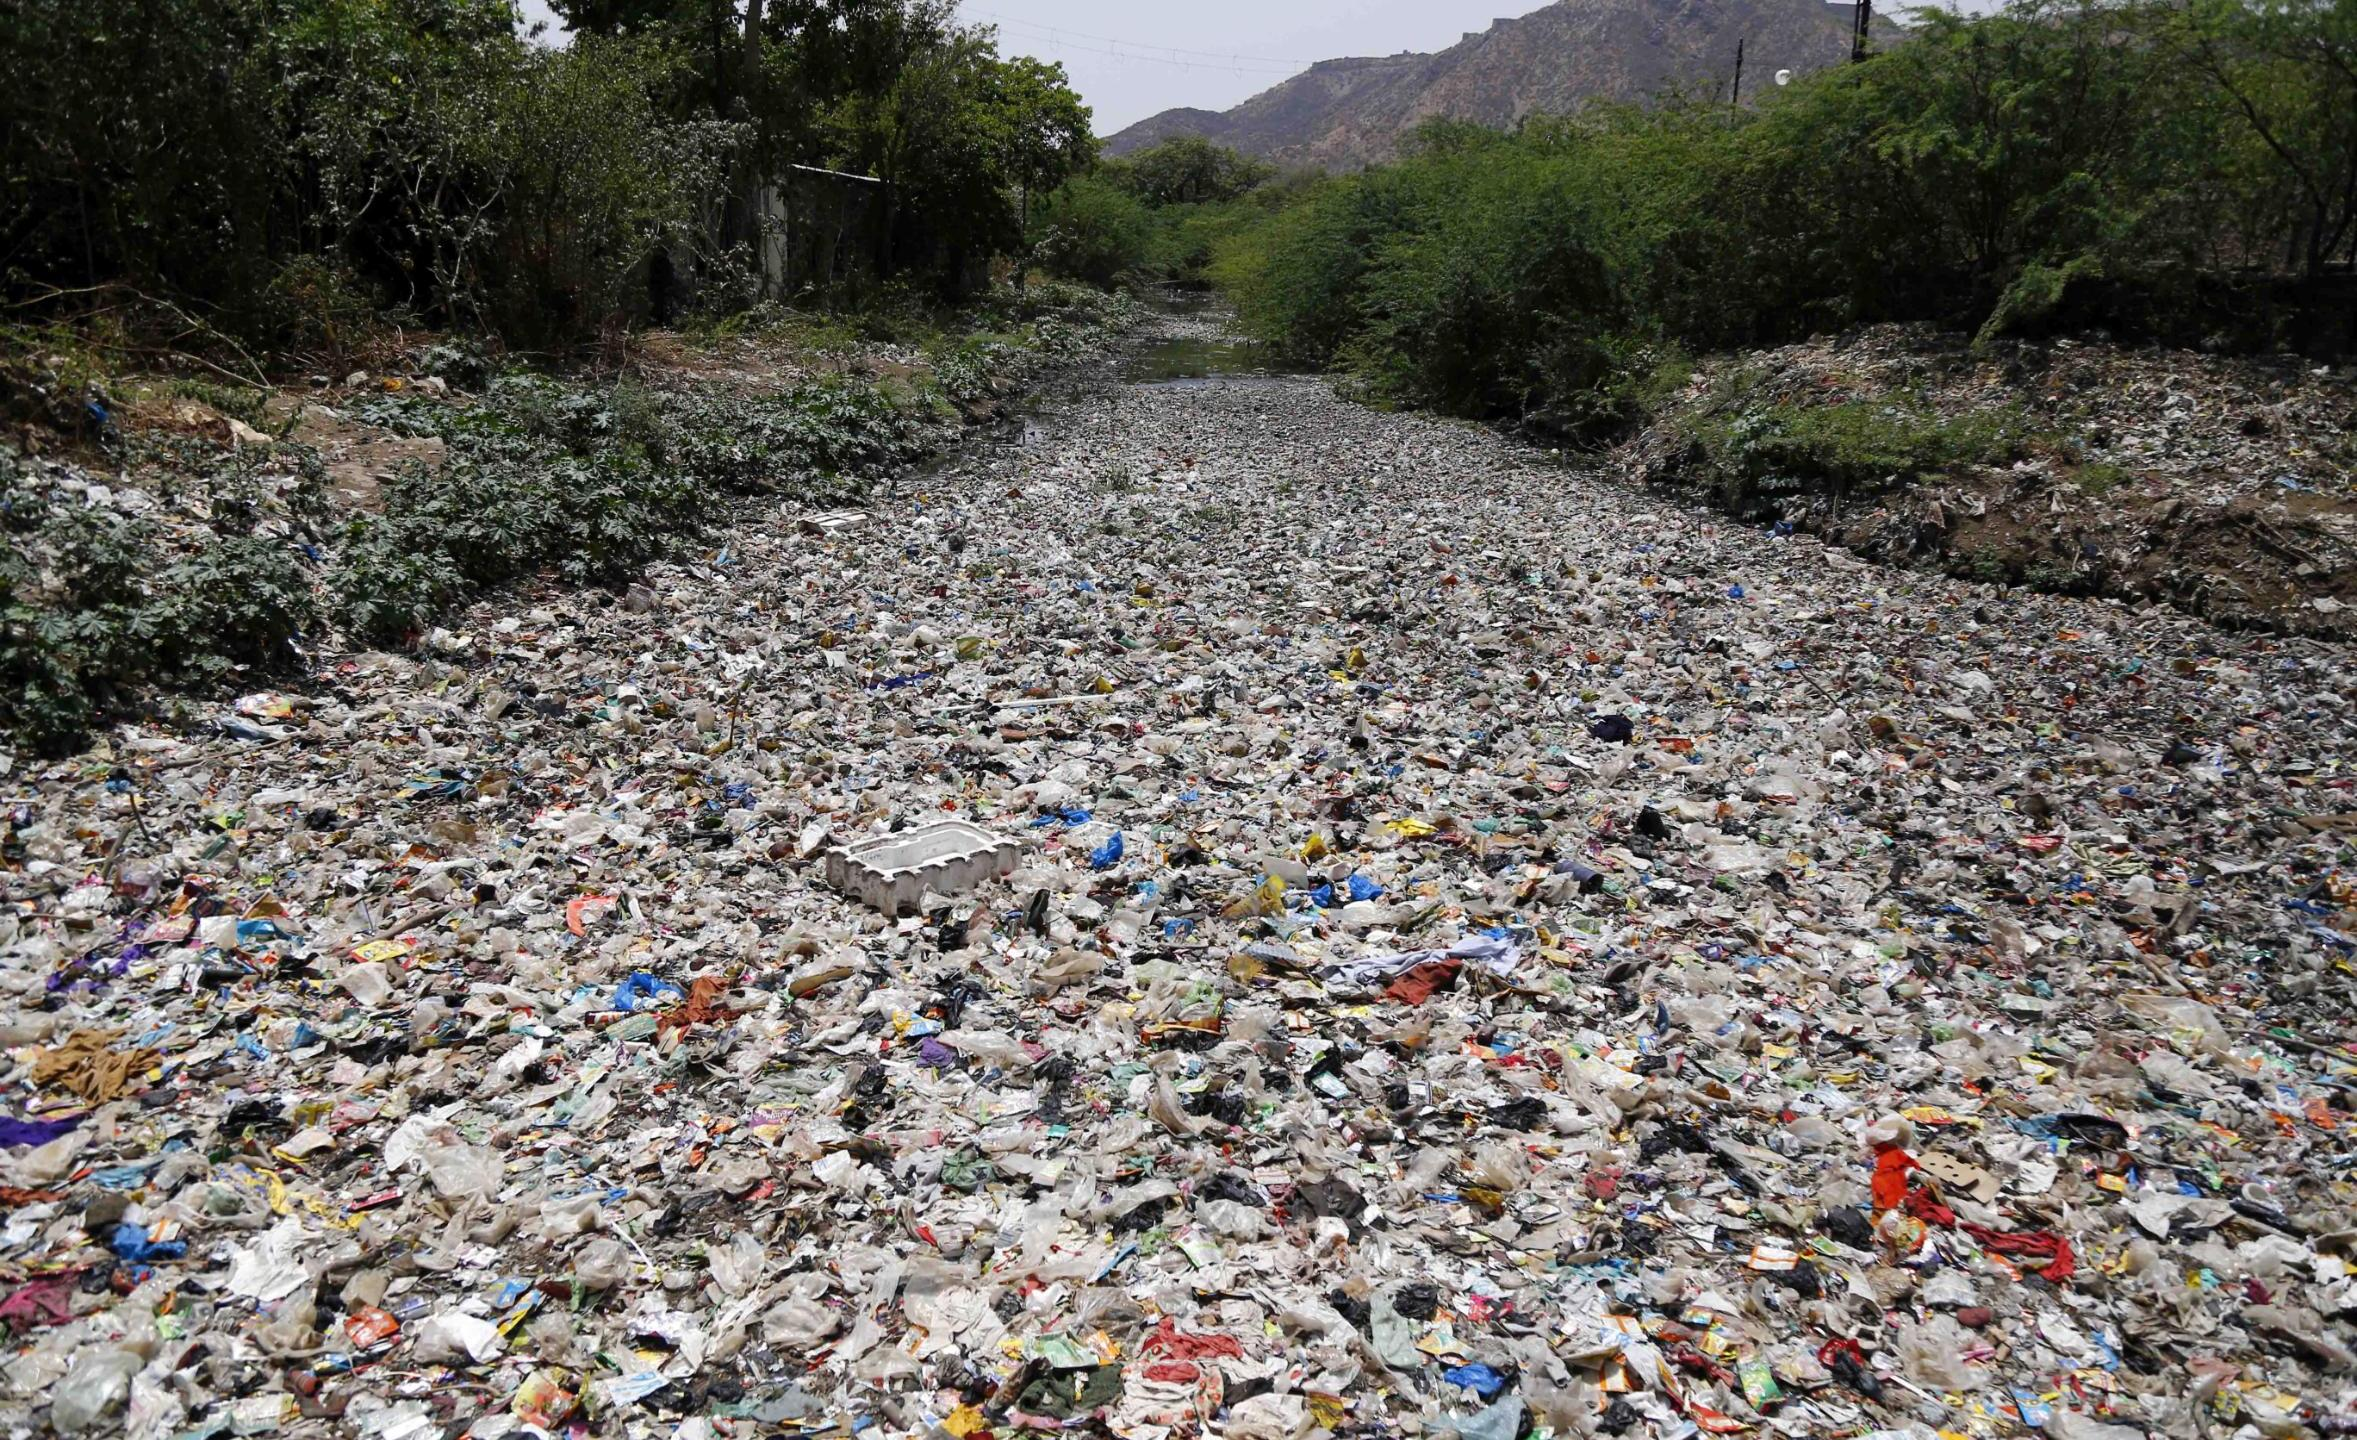 The world will have 710 million tons of plastic pollution by 2040 despite efforts to cut waste, study says. The image shows garbage floating along a river in Ajmer in the Indian state of Rajasthan on May 8, 2018. (HIMANSHU SHARMA/AFP/AFP/Getty Images)